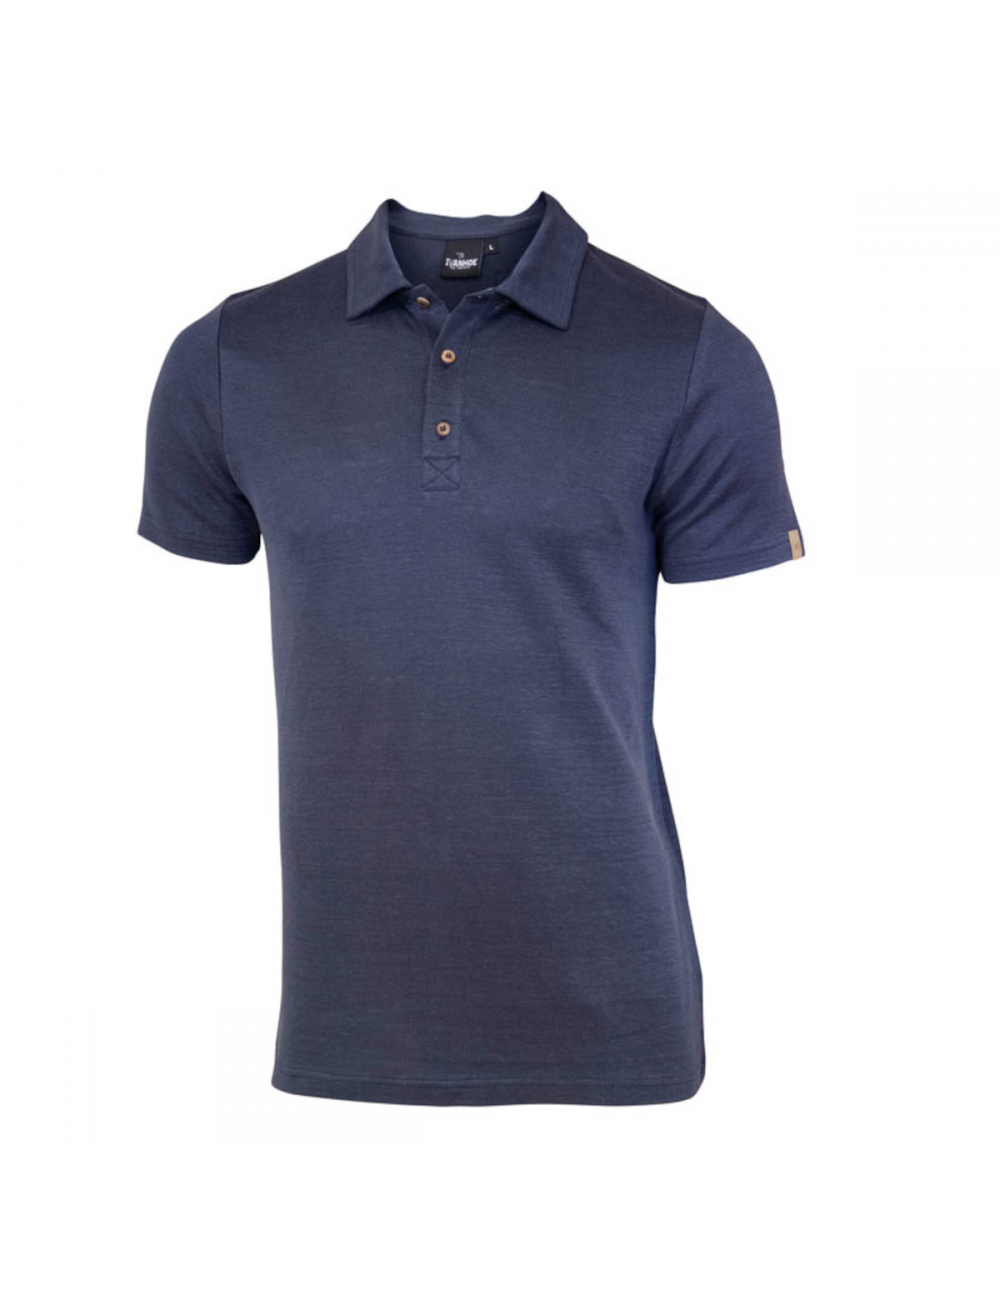 They polo YOU a car, Steelblue, for men's, 100% linen, and Blue